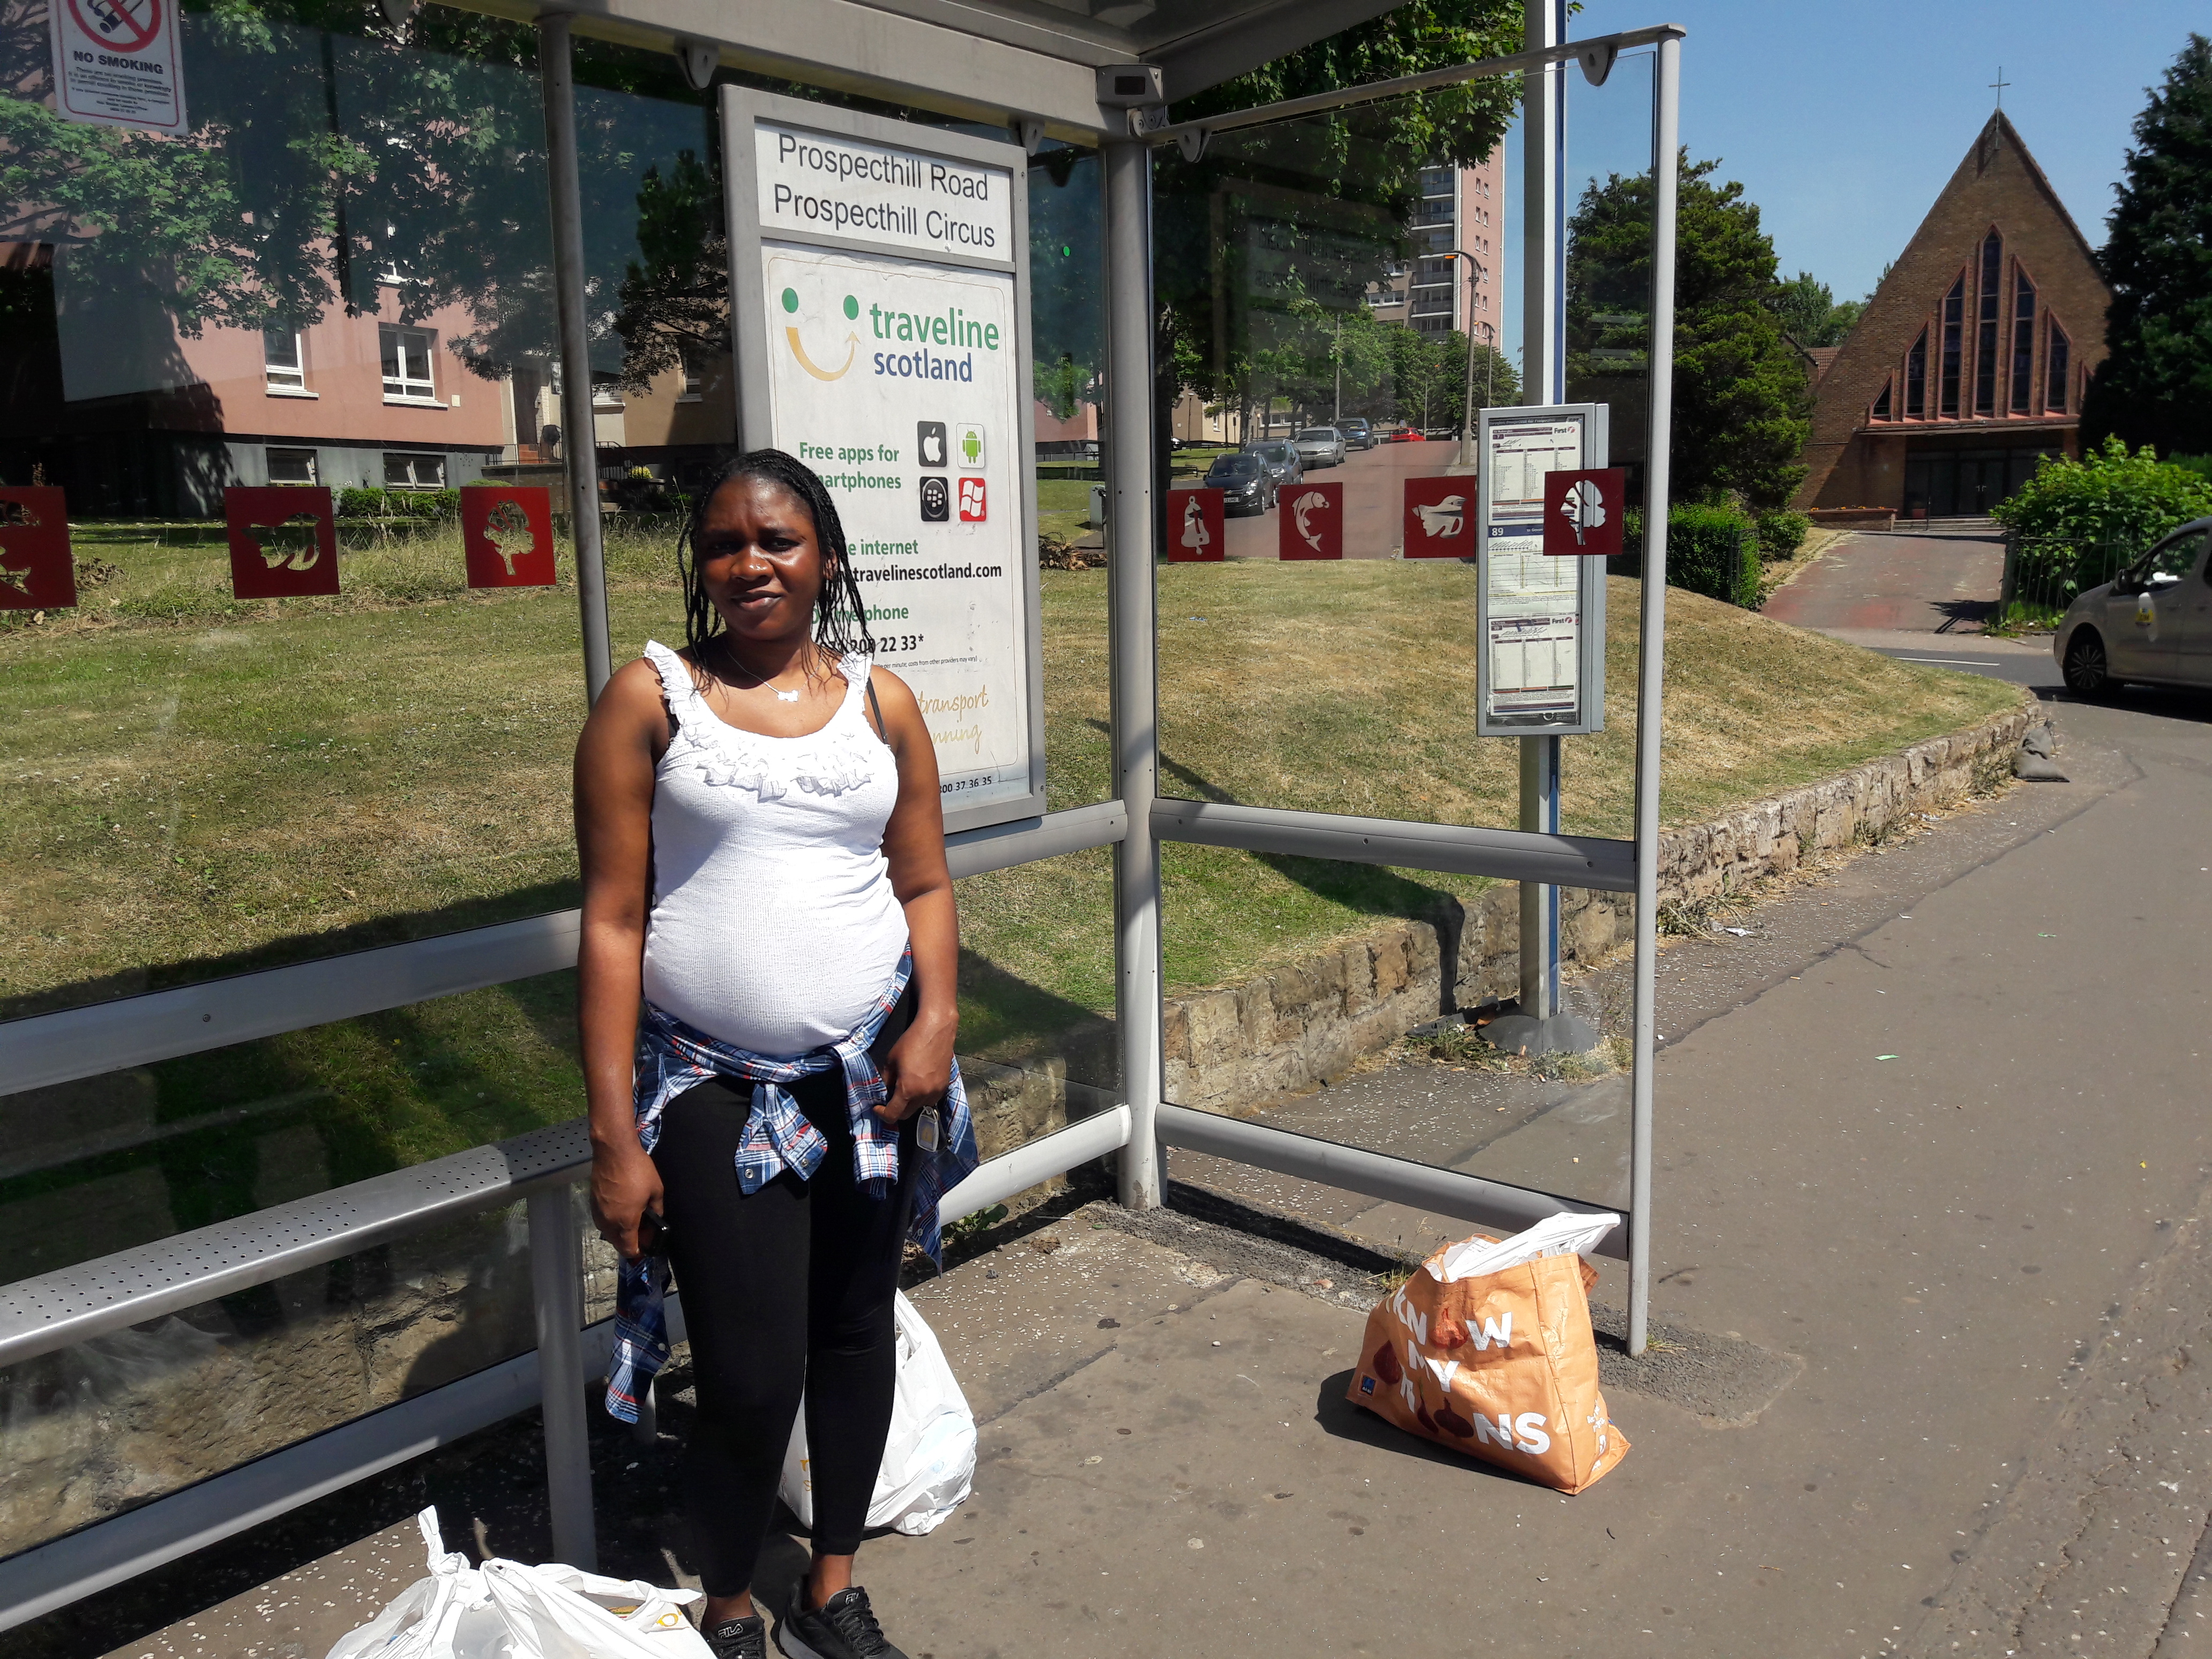 Bus passes for pregnant and new mother asylum seekers